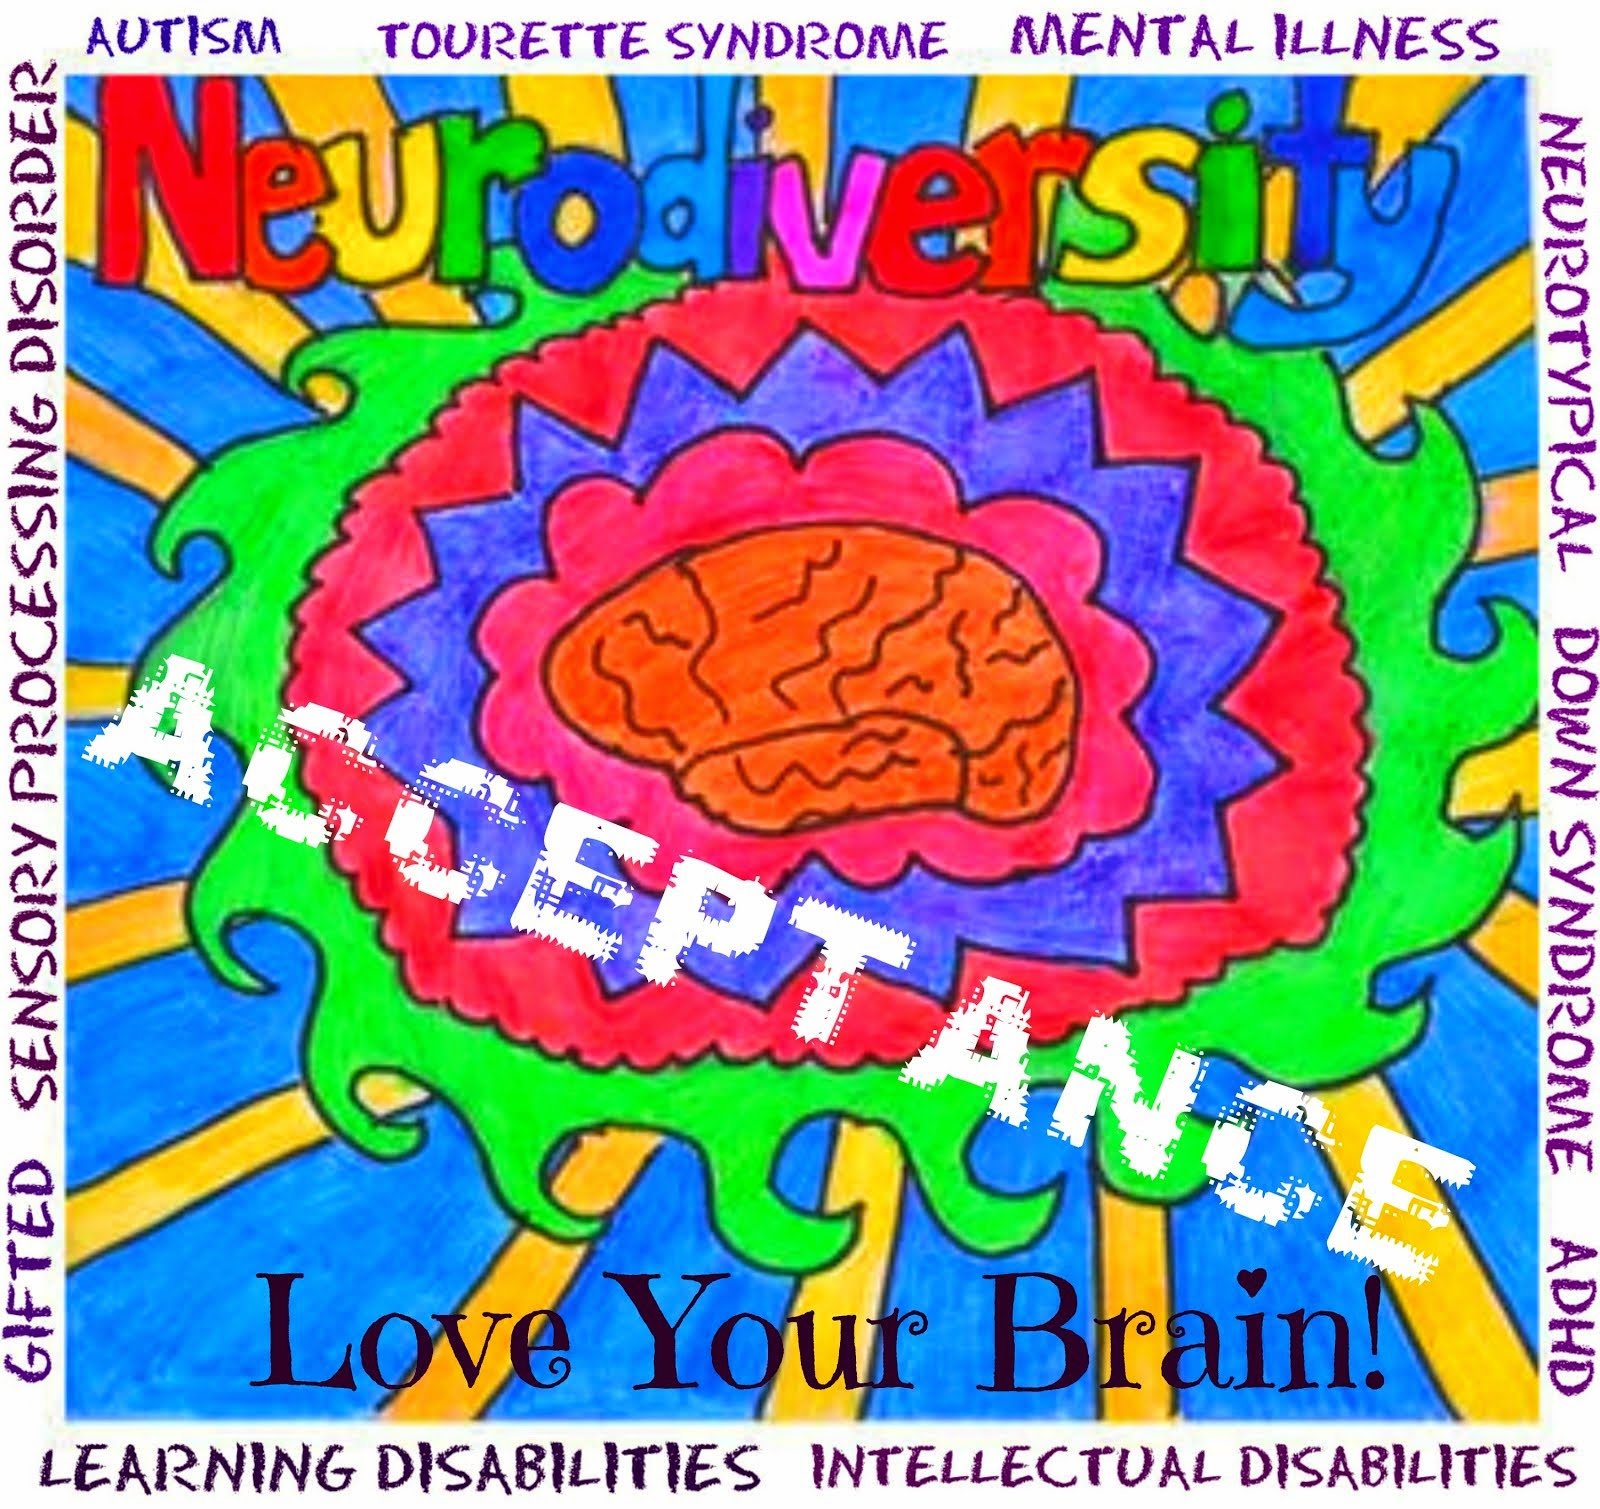 Neurodiversity Awareness/Appreciation